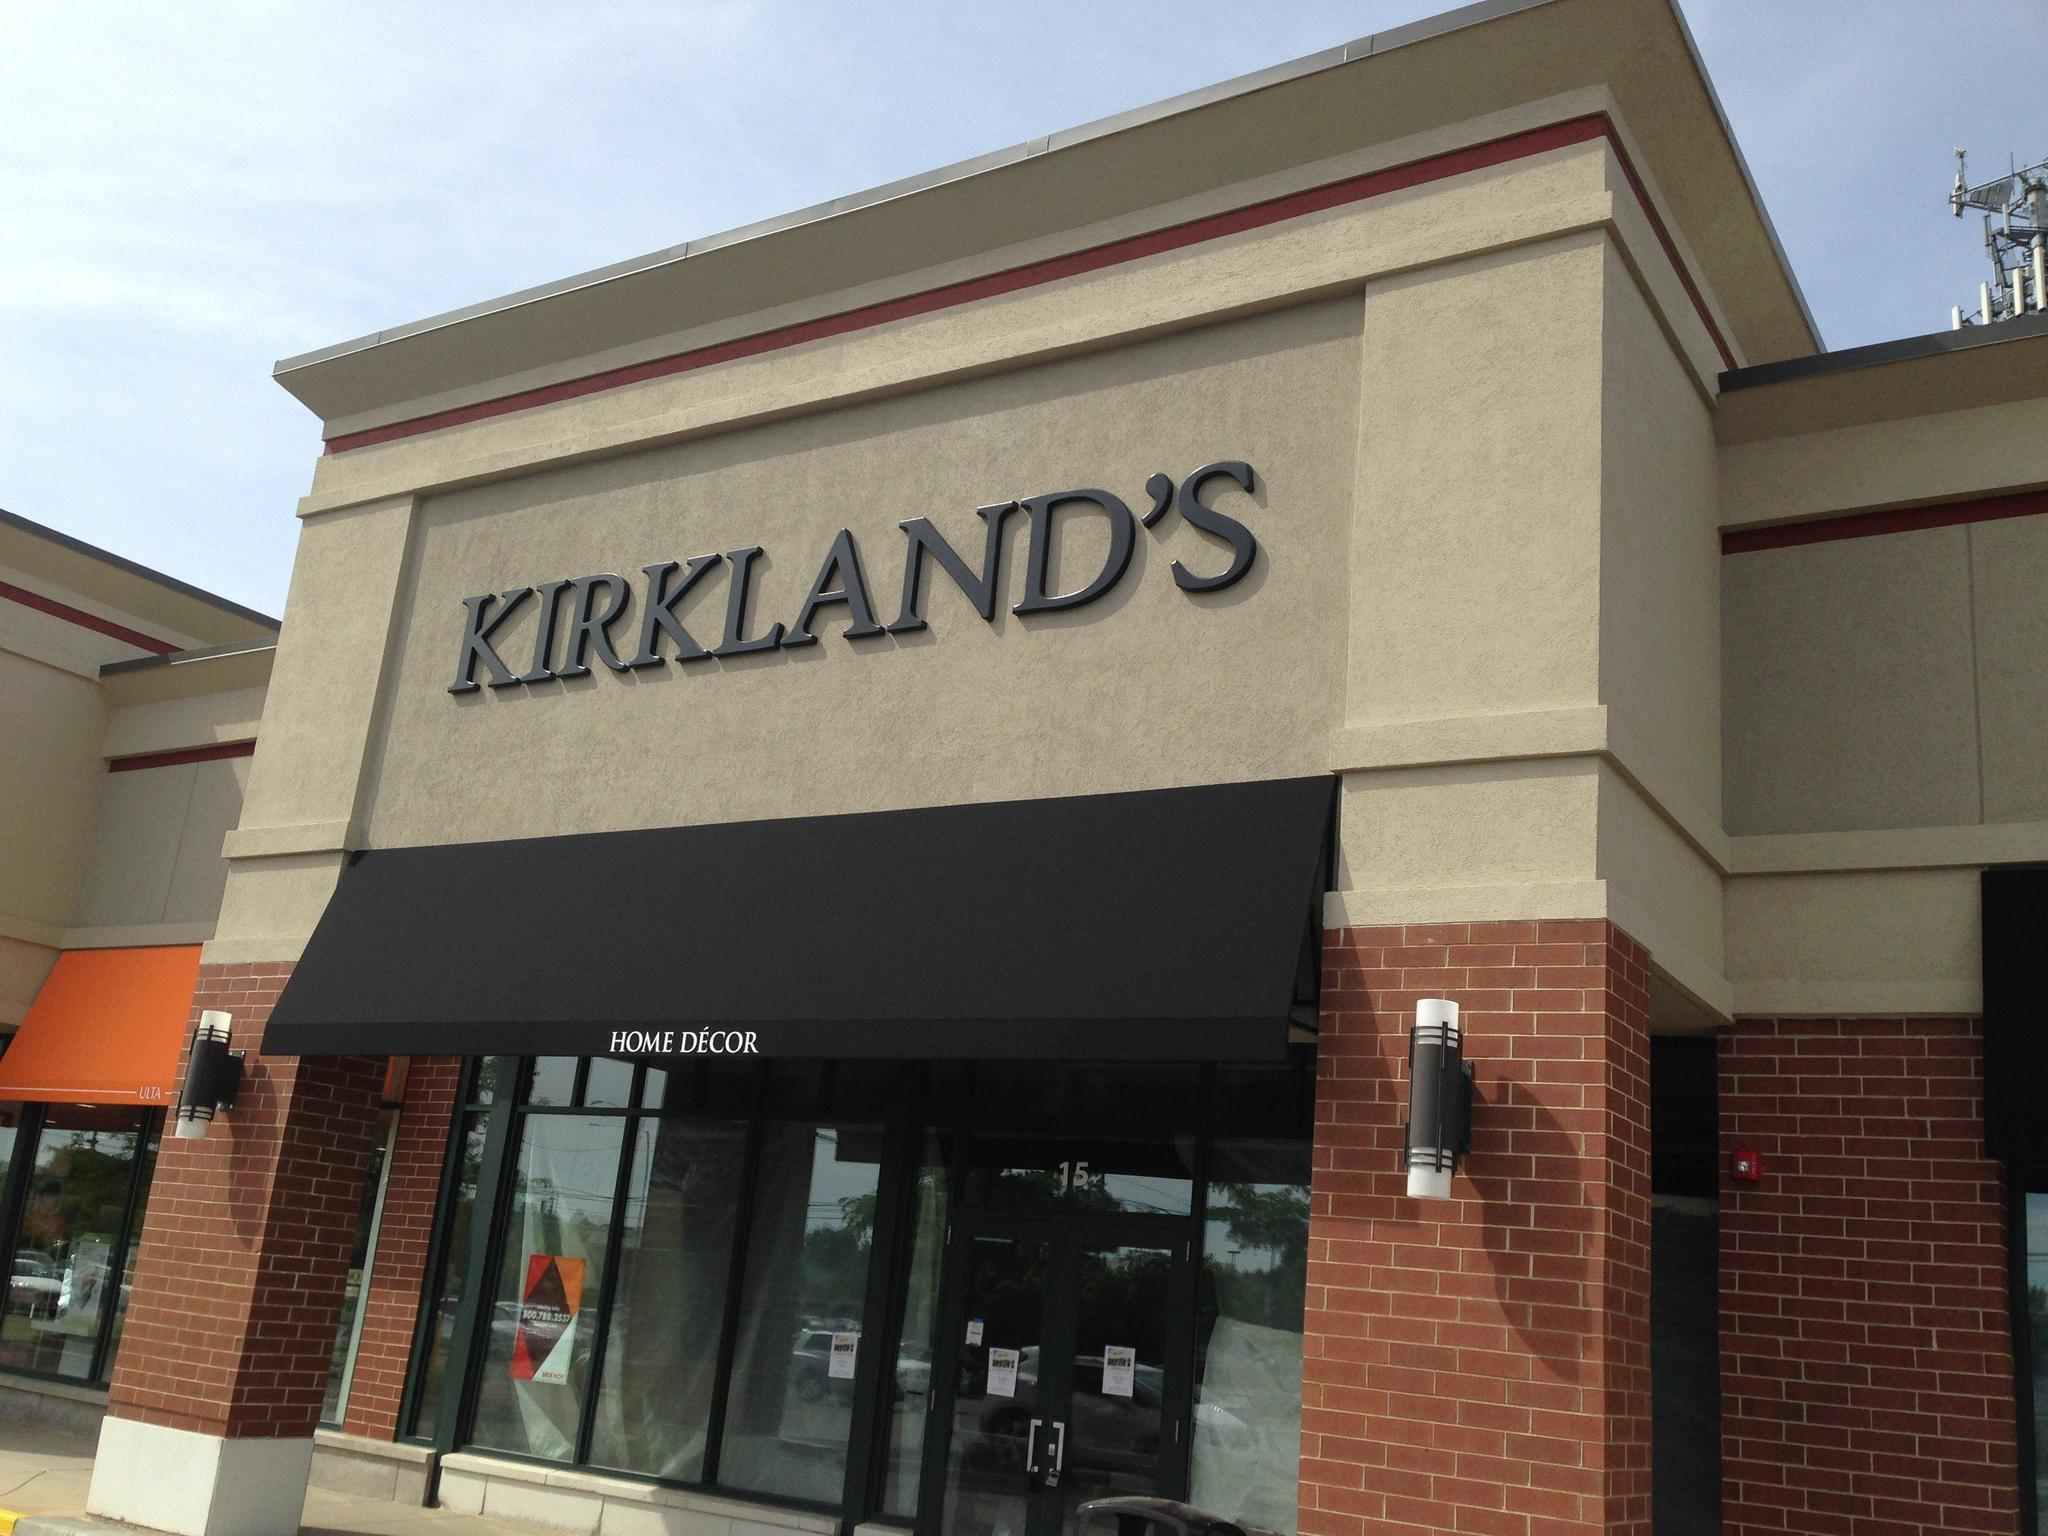 Home Decor Retailer Kirkland's Planning New Store In